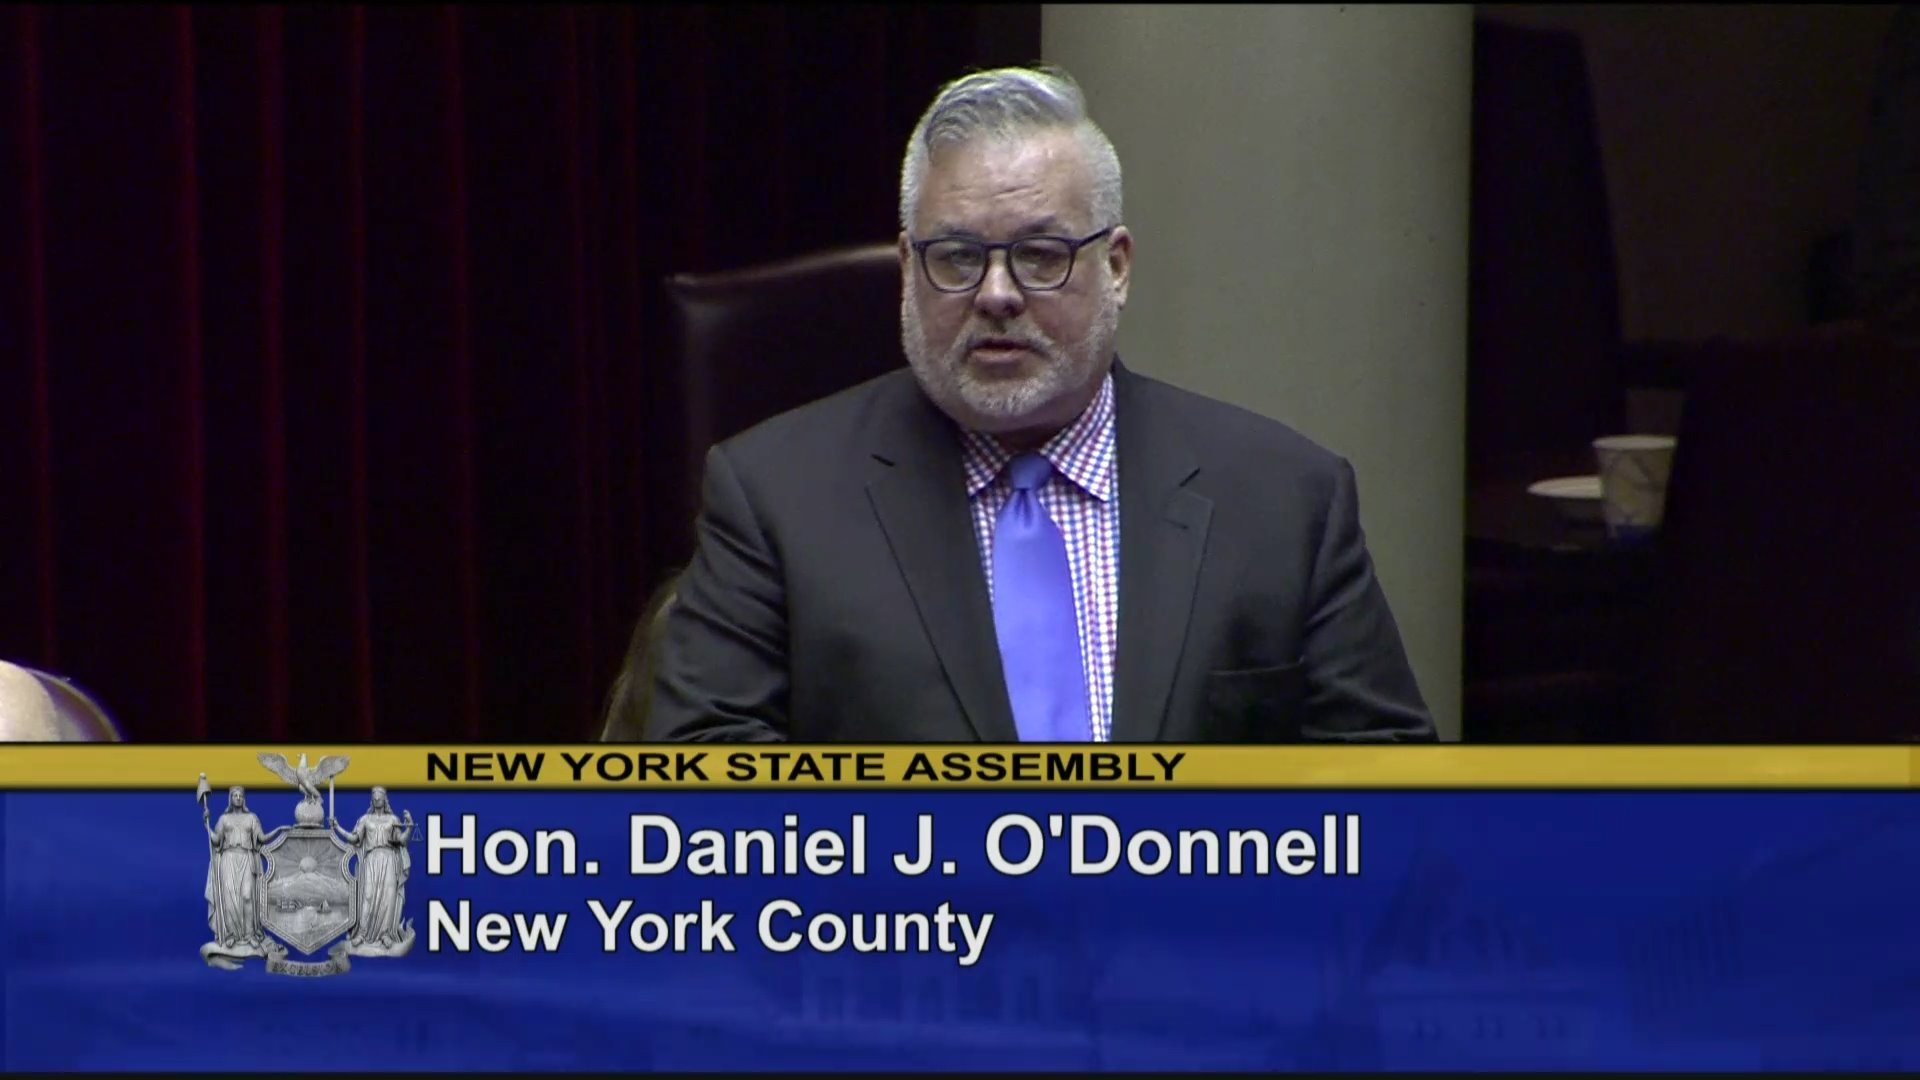 O'Donnell Advocates for Restricting Access to Firearms by Domestic Abusers